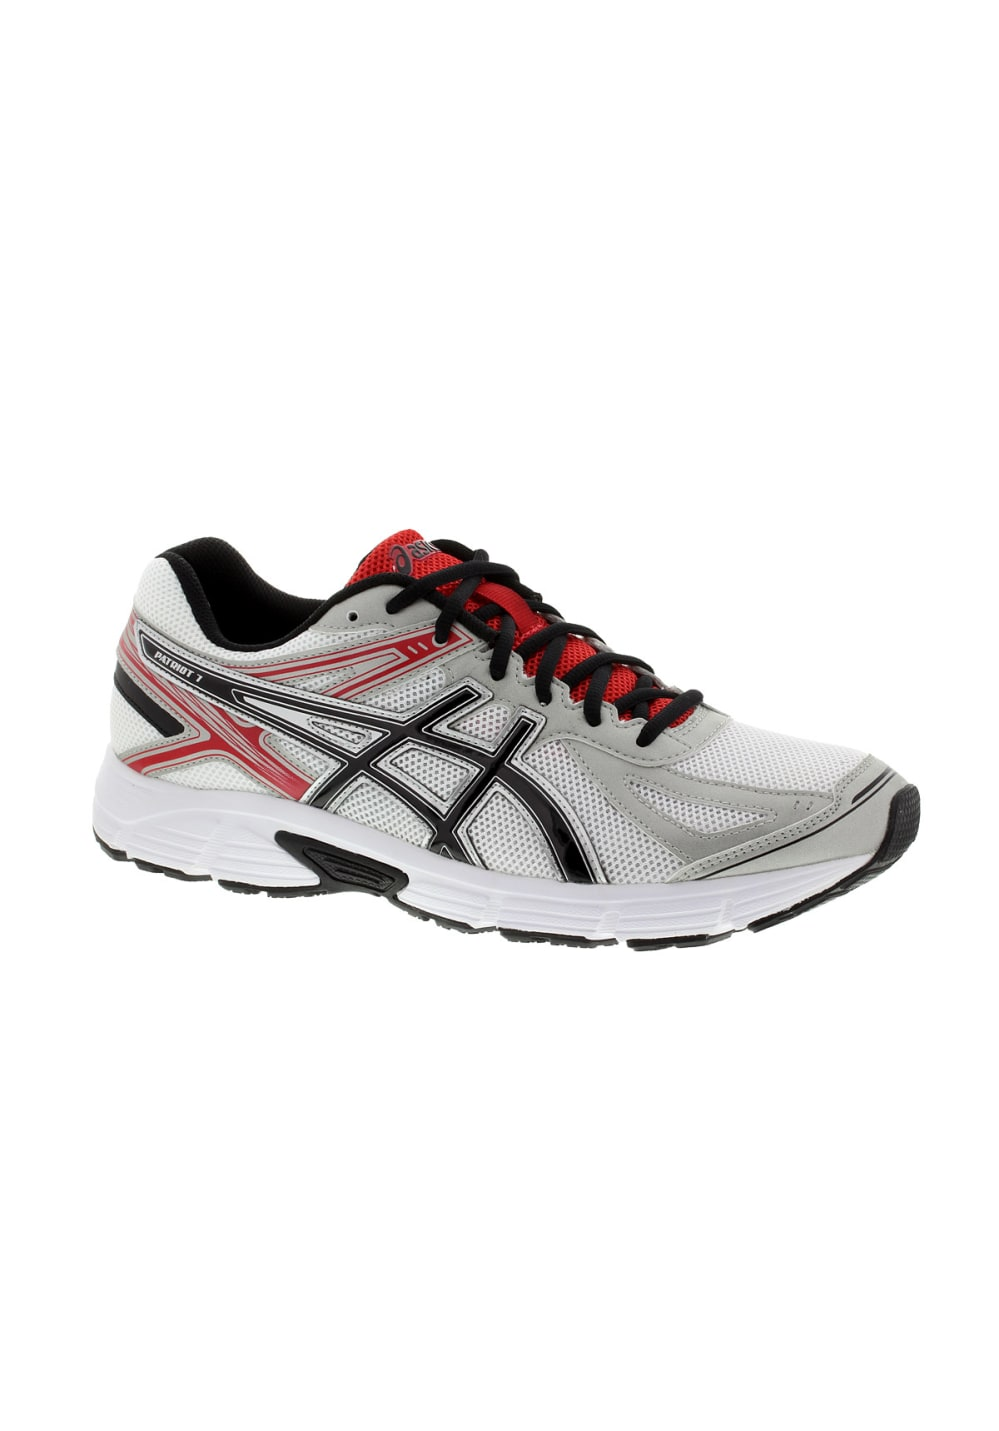 ASICS Patriot 7 Chaussures running pour Homme Gris